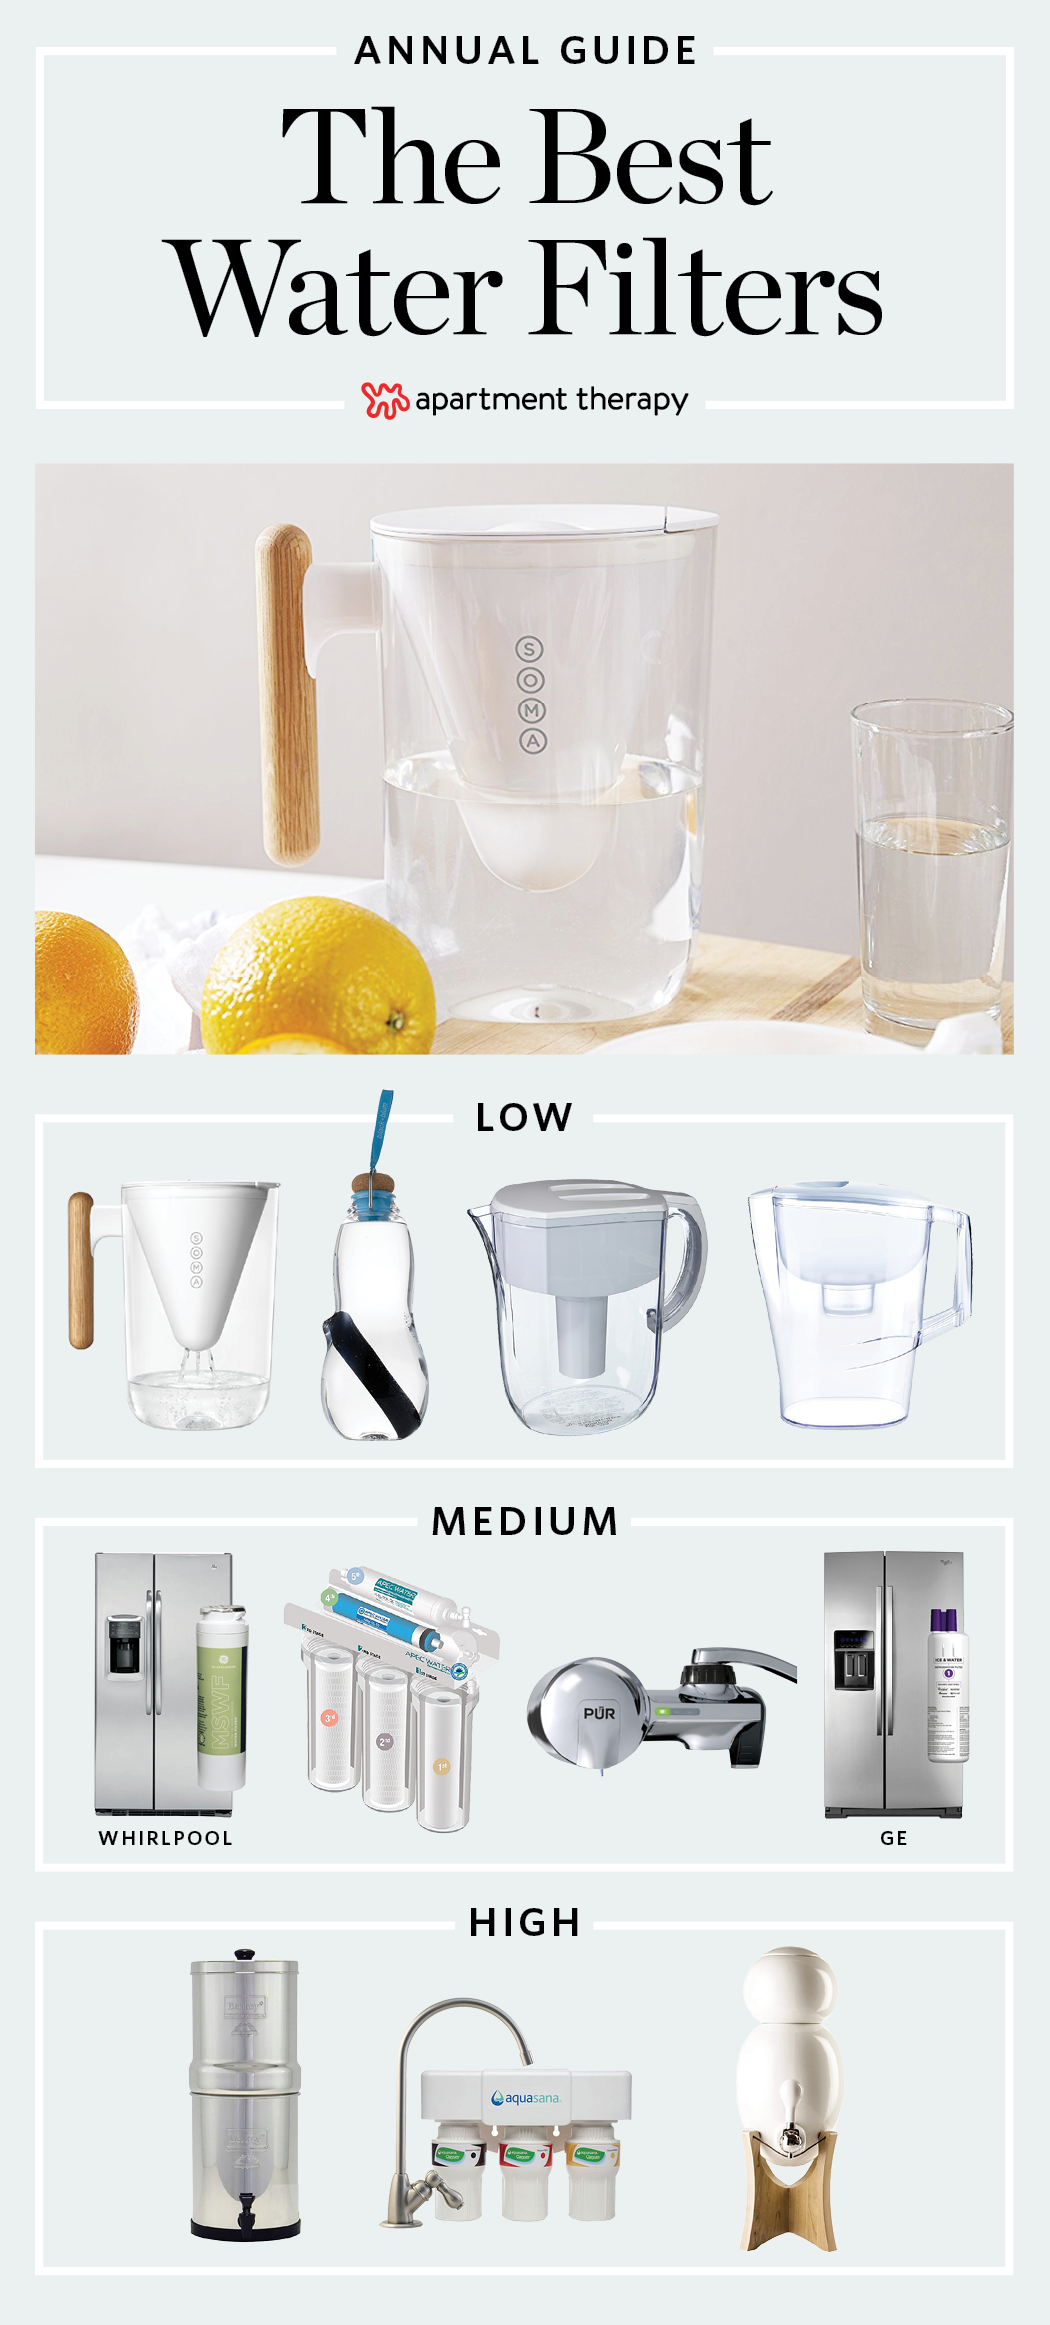 Top 10: The Best Water Filters of 2016 | Apartment Therapy